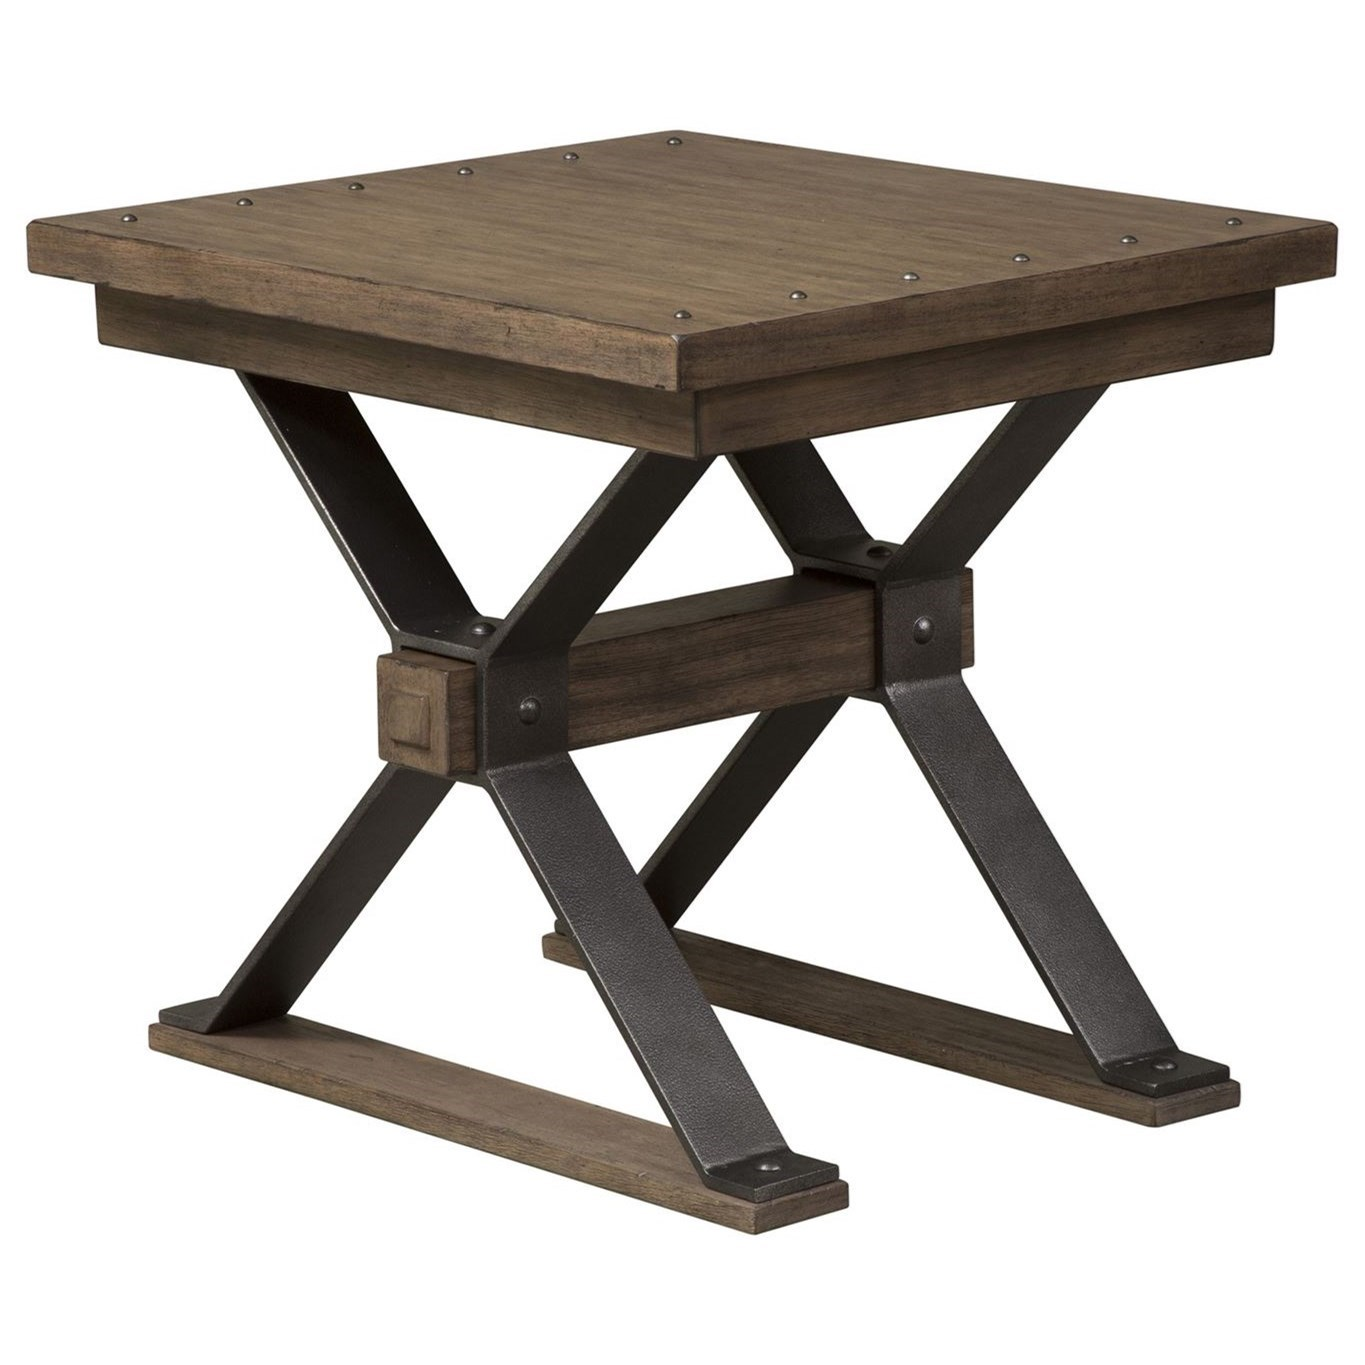 Sonoma Road End Table by Liberty Furniture at Darvin Furniture